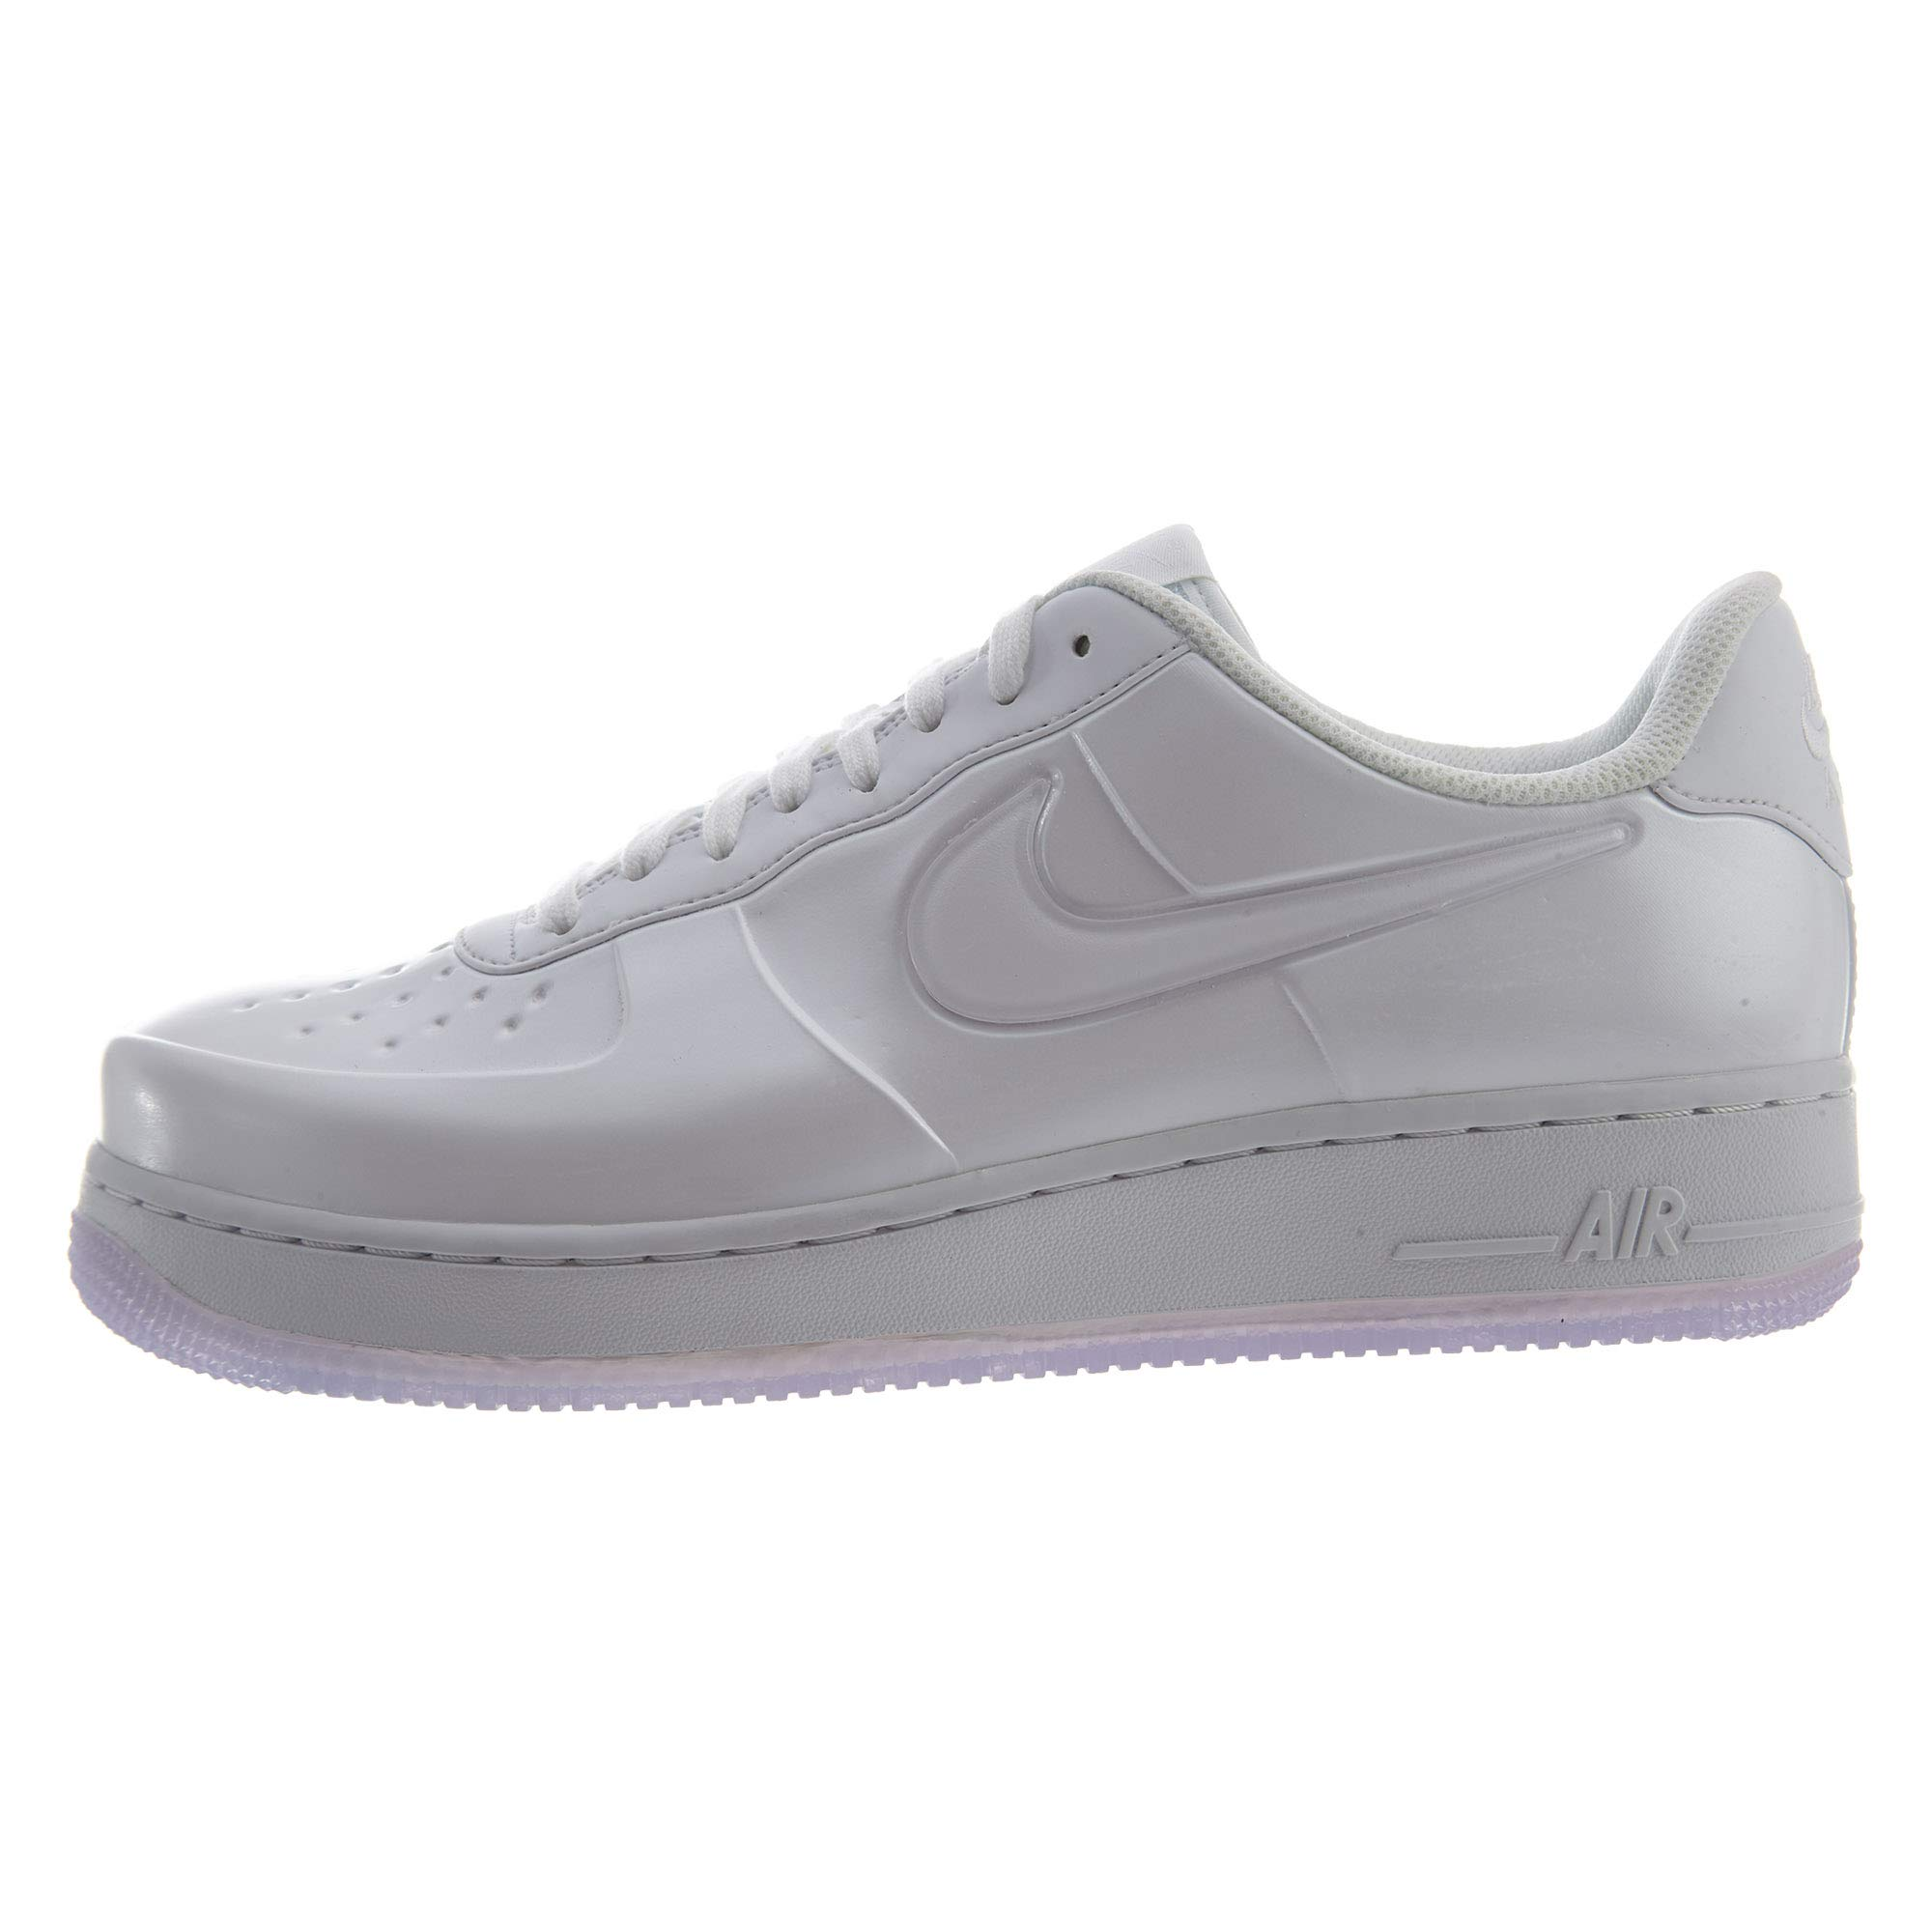 wholesale dealer 391b4 85ce3 Nike AF1 Foamposite Pro Cup Mens Trainers AJ3664 Sneakers Shoes (UK 8.5 US  9.5 EU 43, White White White 100)